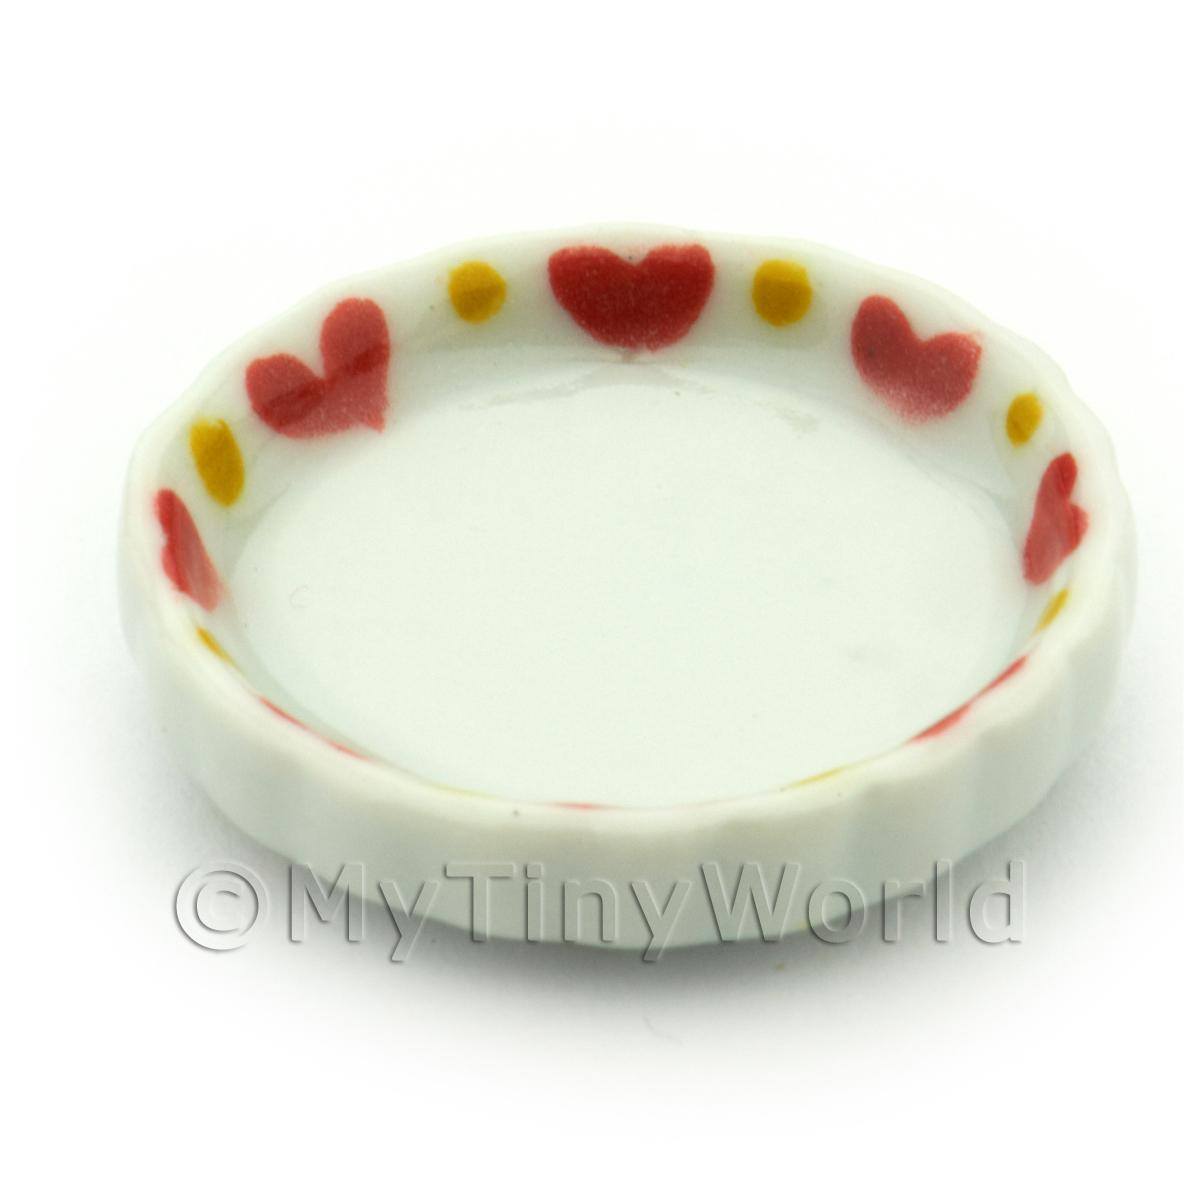 Dolls House Miniature Ceramic Flan Dish With Heart Pattern